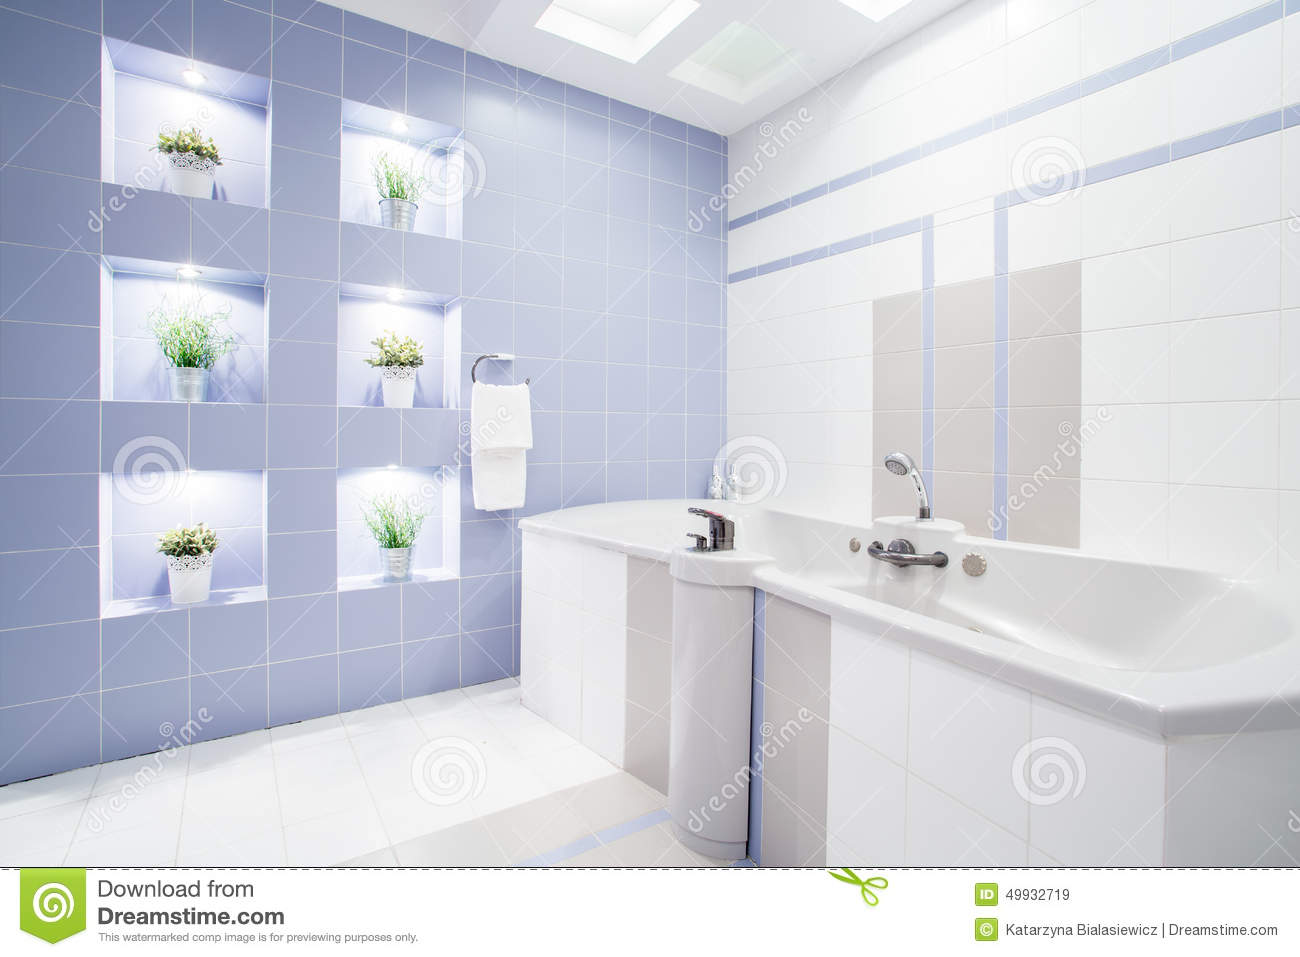 Bright Modern Bathroom With Enormous Bathtub Stock Image - Image of ...